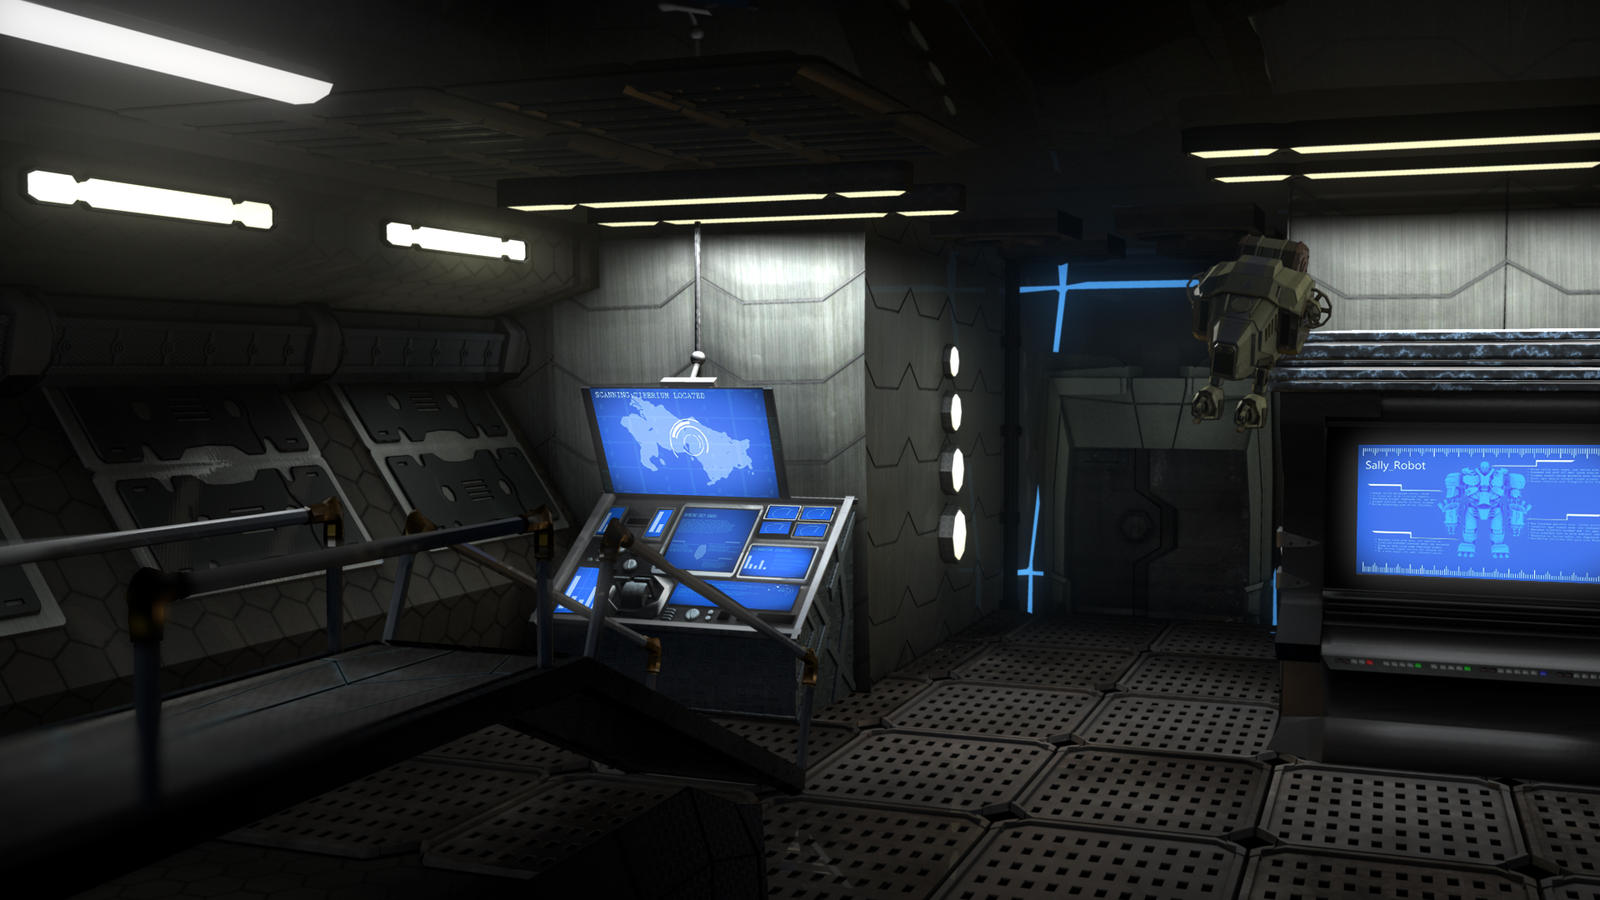 Control room entrance by keeganwest on deviantart for Futuristic control room